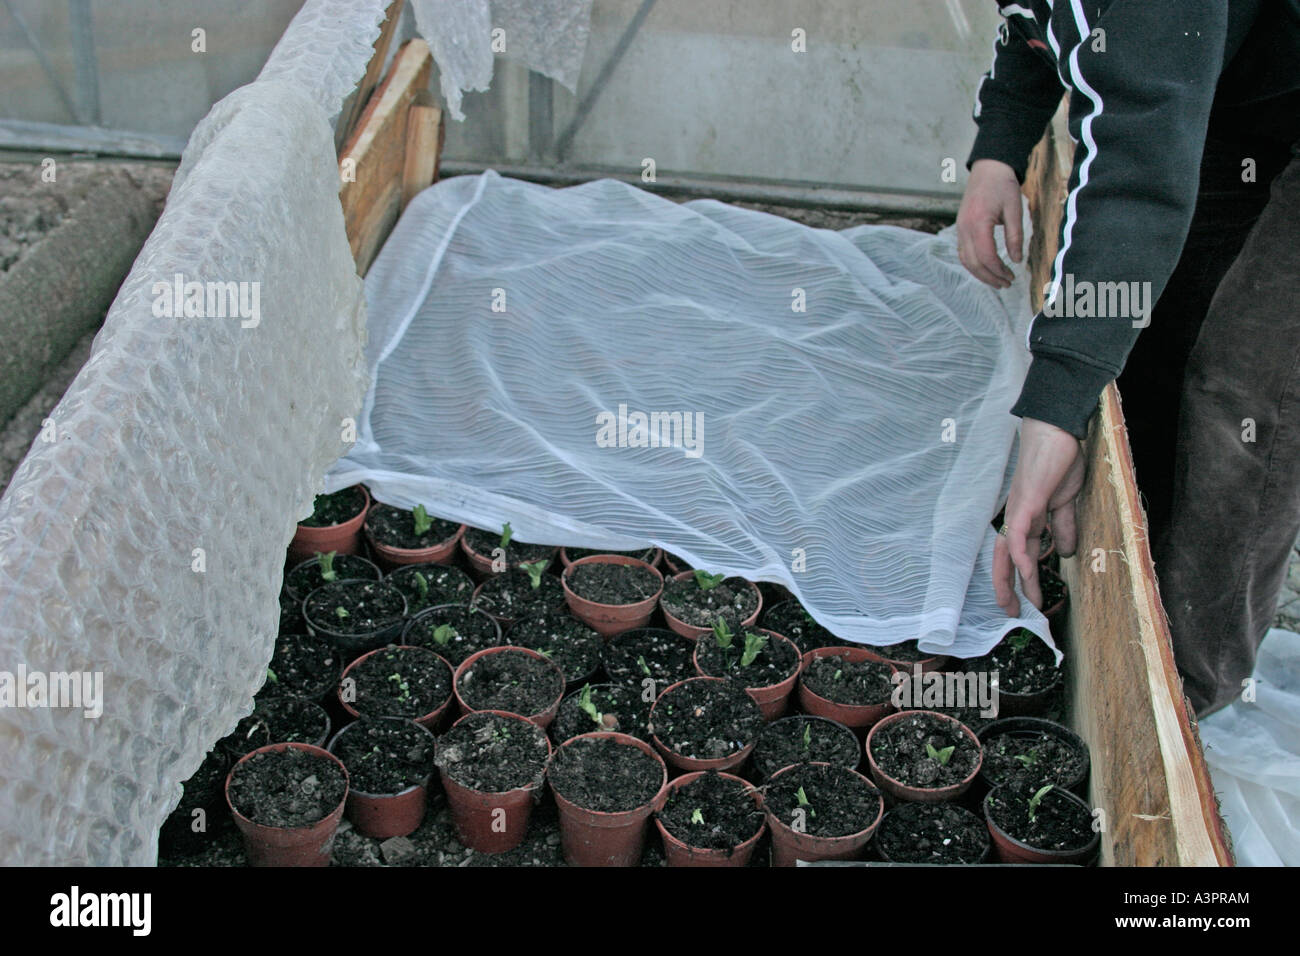 FROST PROTECTION COVER PLANTS WITH NET CURTAINS FOR ADDITIONAL PROTECTION - Stock Image